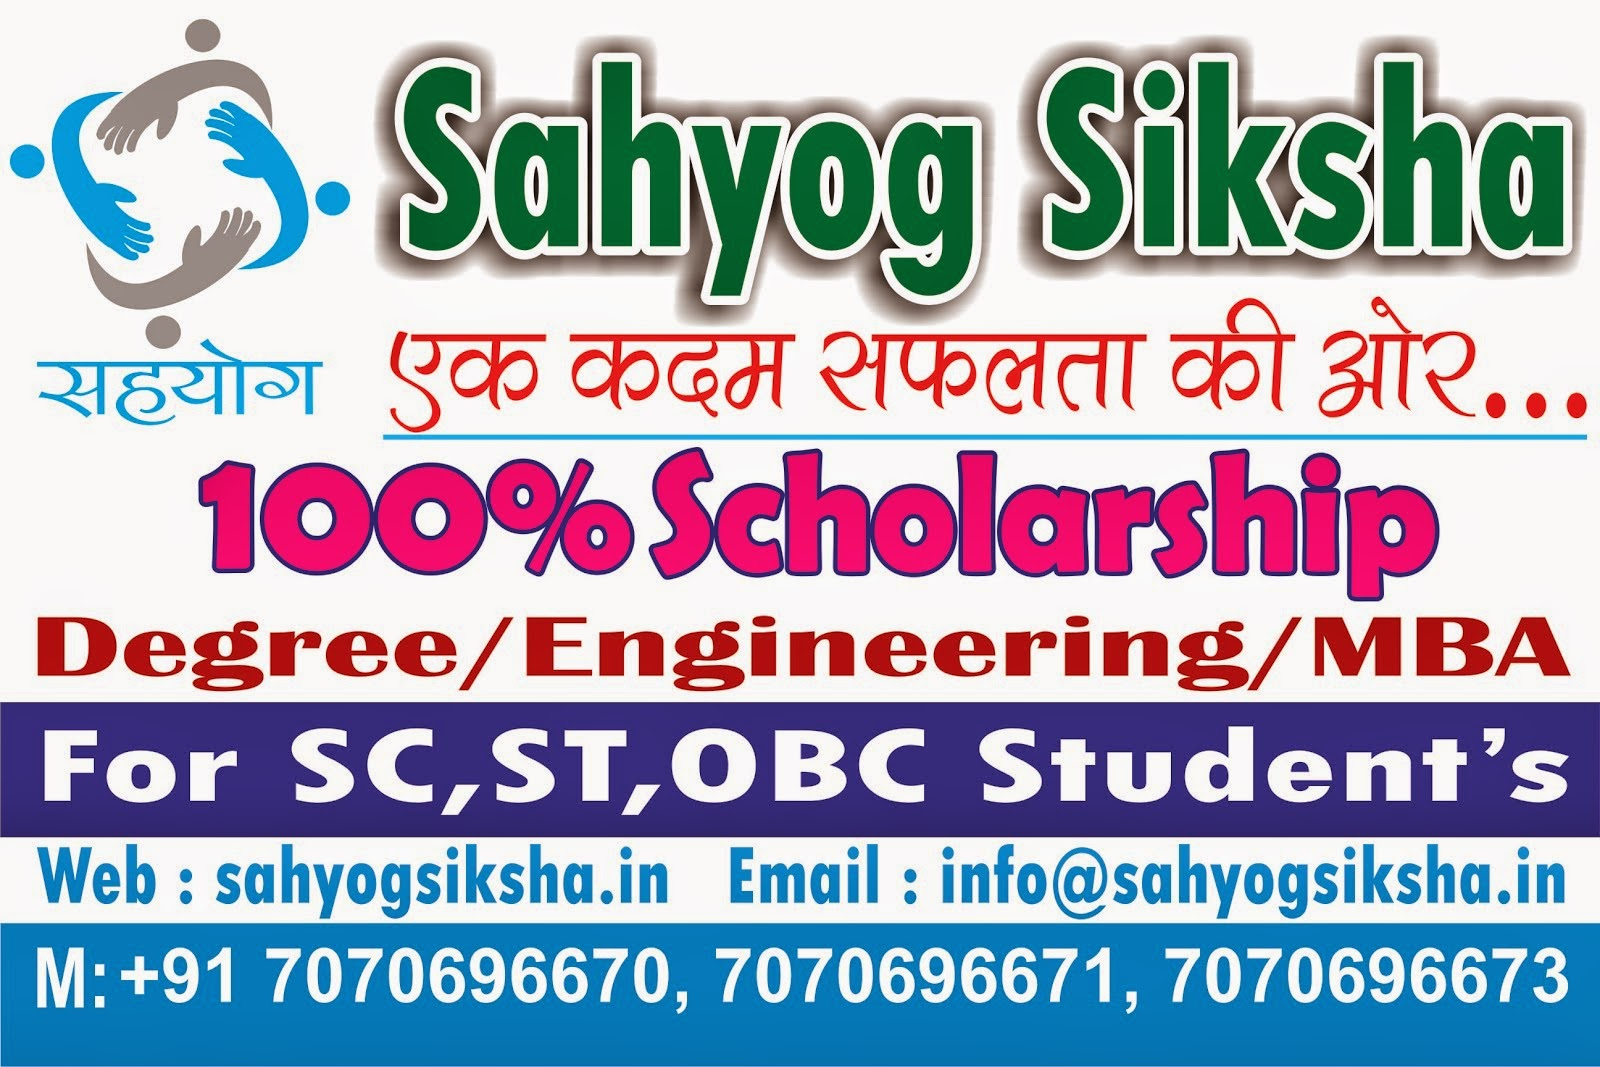 Scholarship for SC/ST/OBC